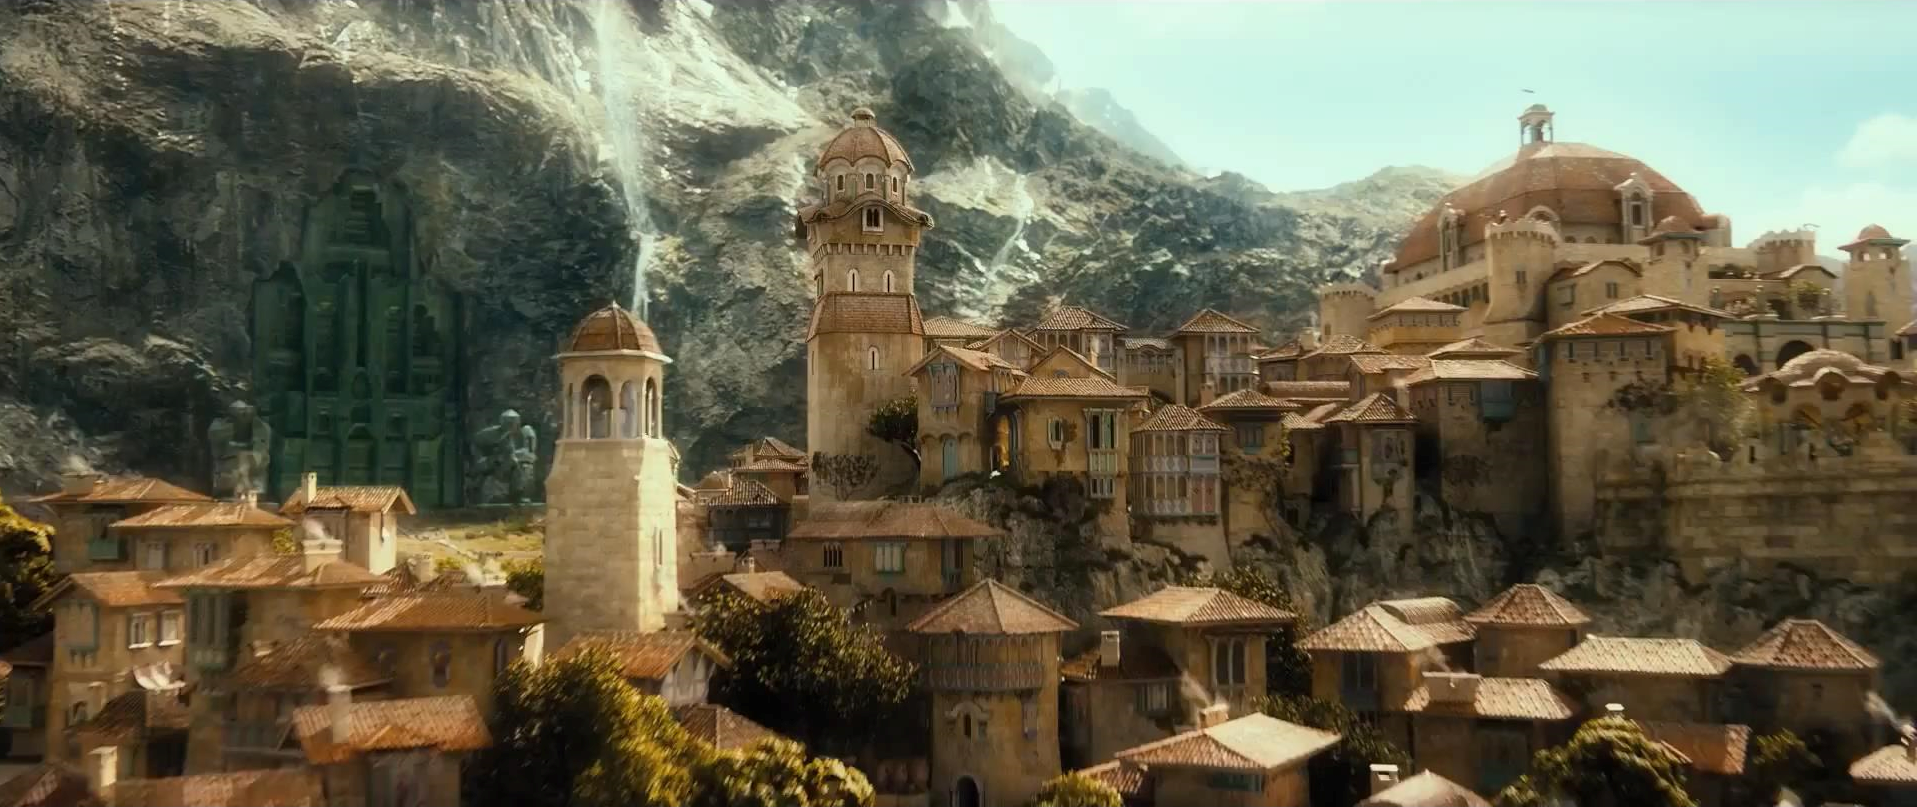 Town Of Dale Hobbit And Lord Of The Rings In 2019 The Hobbit